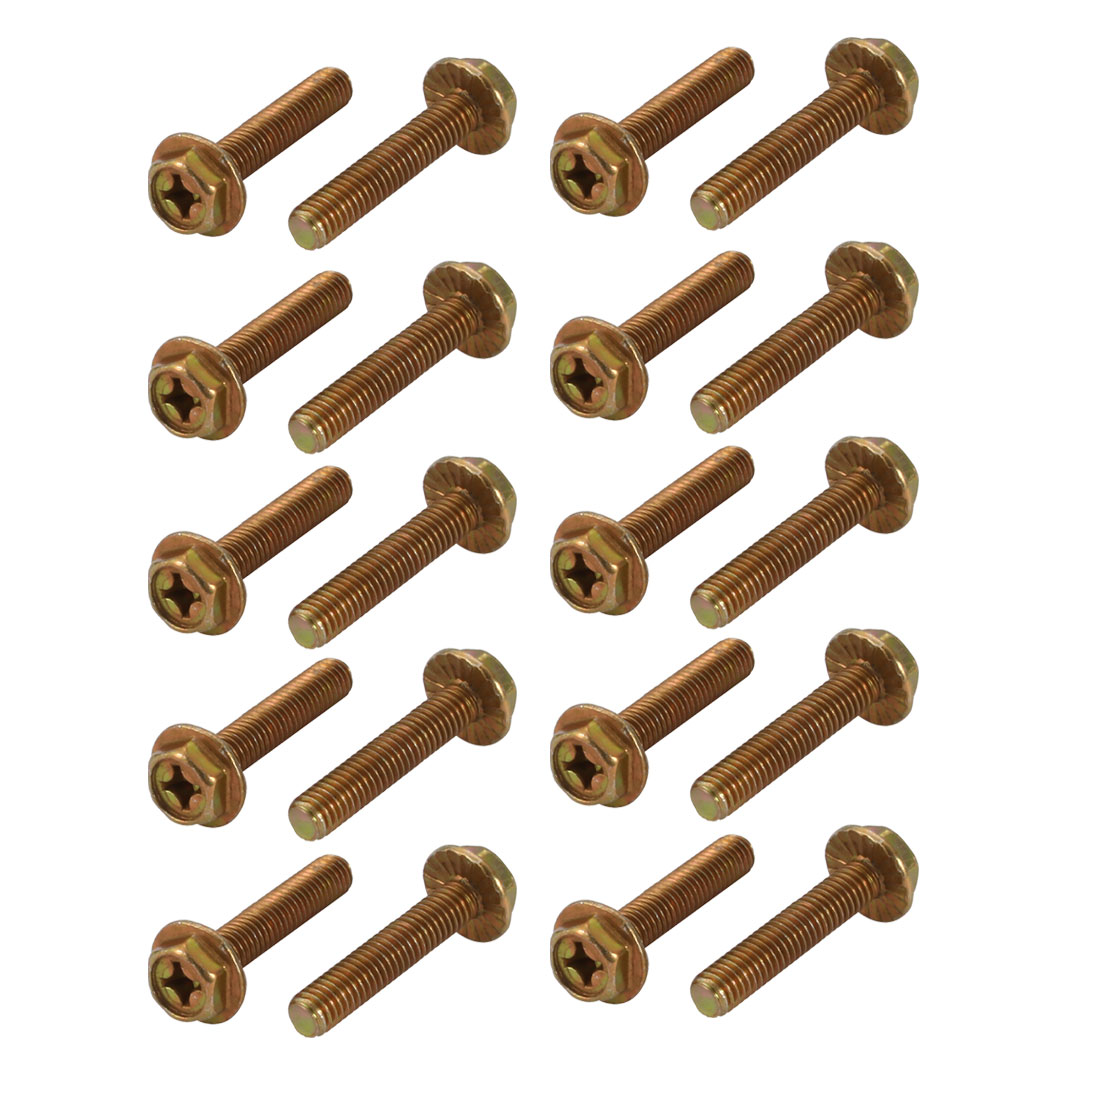 Unique Bargains 20Pcs M6x30mm Yellow Zinc Plated Philips Drive Serrated Flange Hex Head Bolt - image 3 of 3